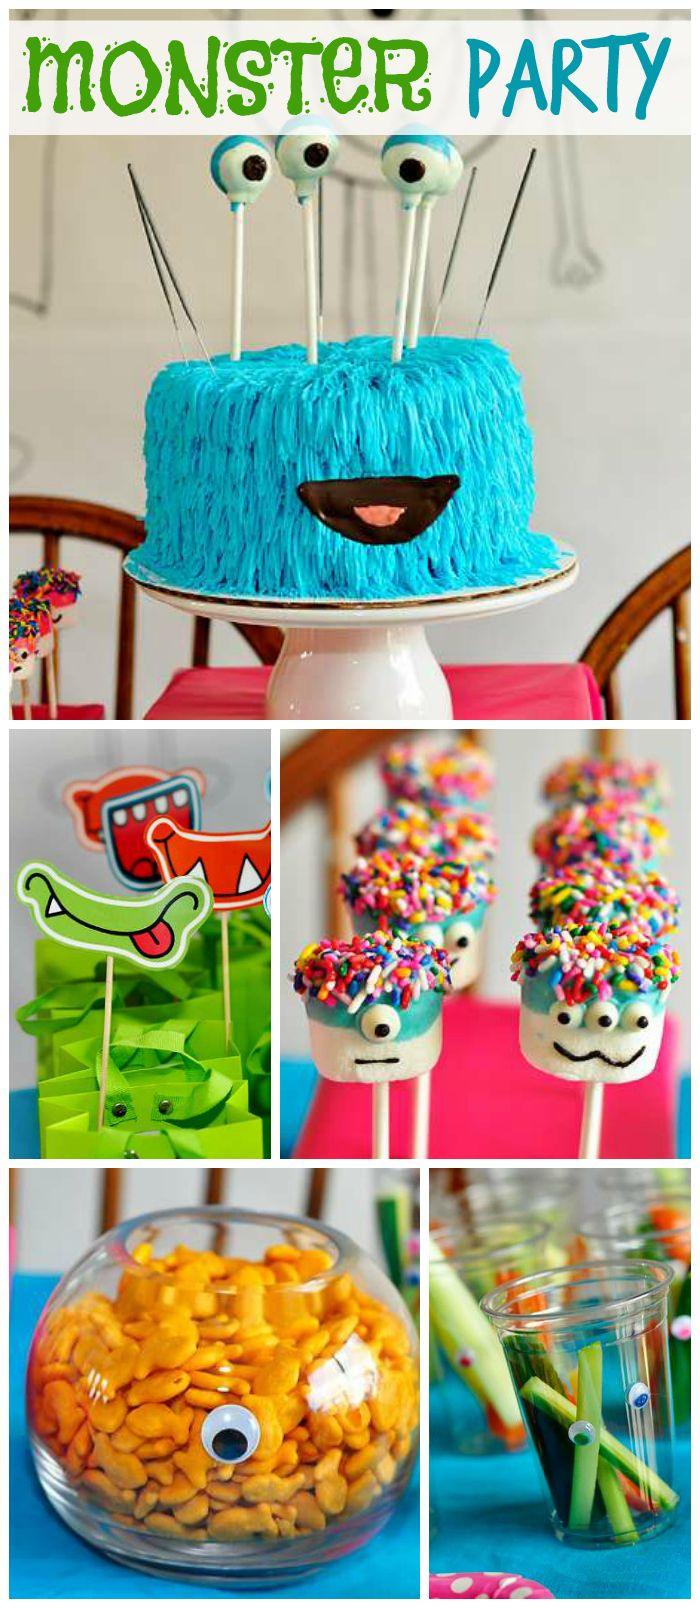 A Monster Themed Girl Birthday Party With Fun Cake Marshmallow Pops And Hand Drawn Backdrop See More Planning Ideas At CatchMyParty